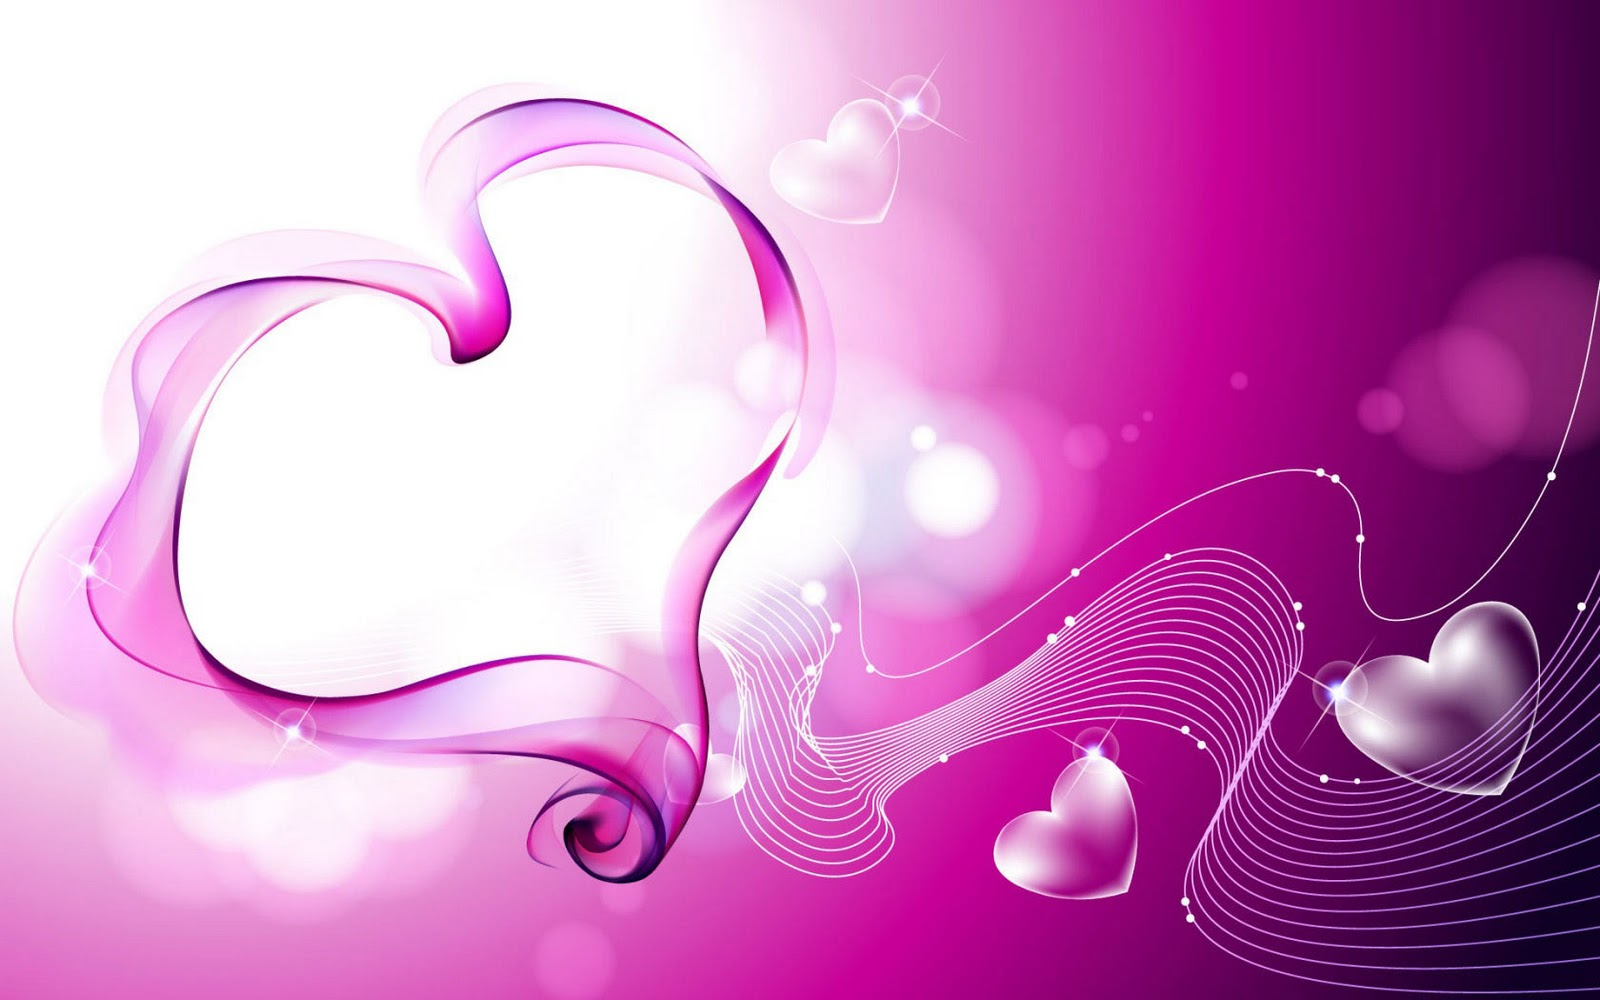 Love Dp Hd Wallpaper : Liefdes Wallpapers HD Wallpapers